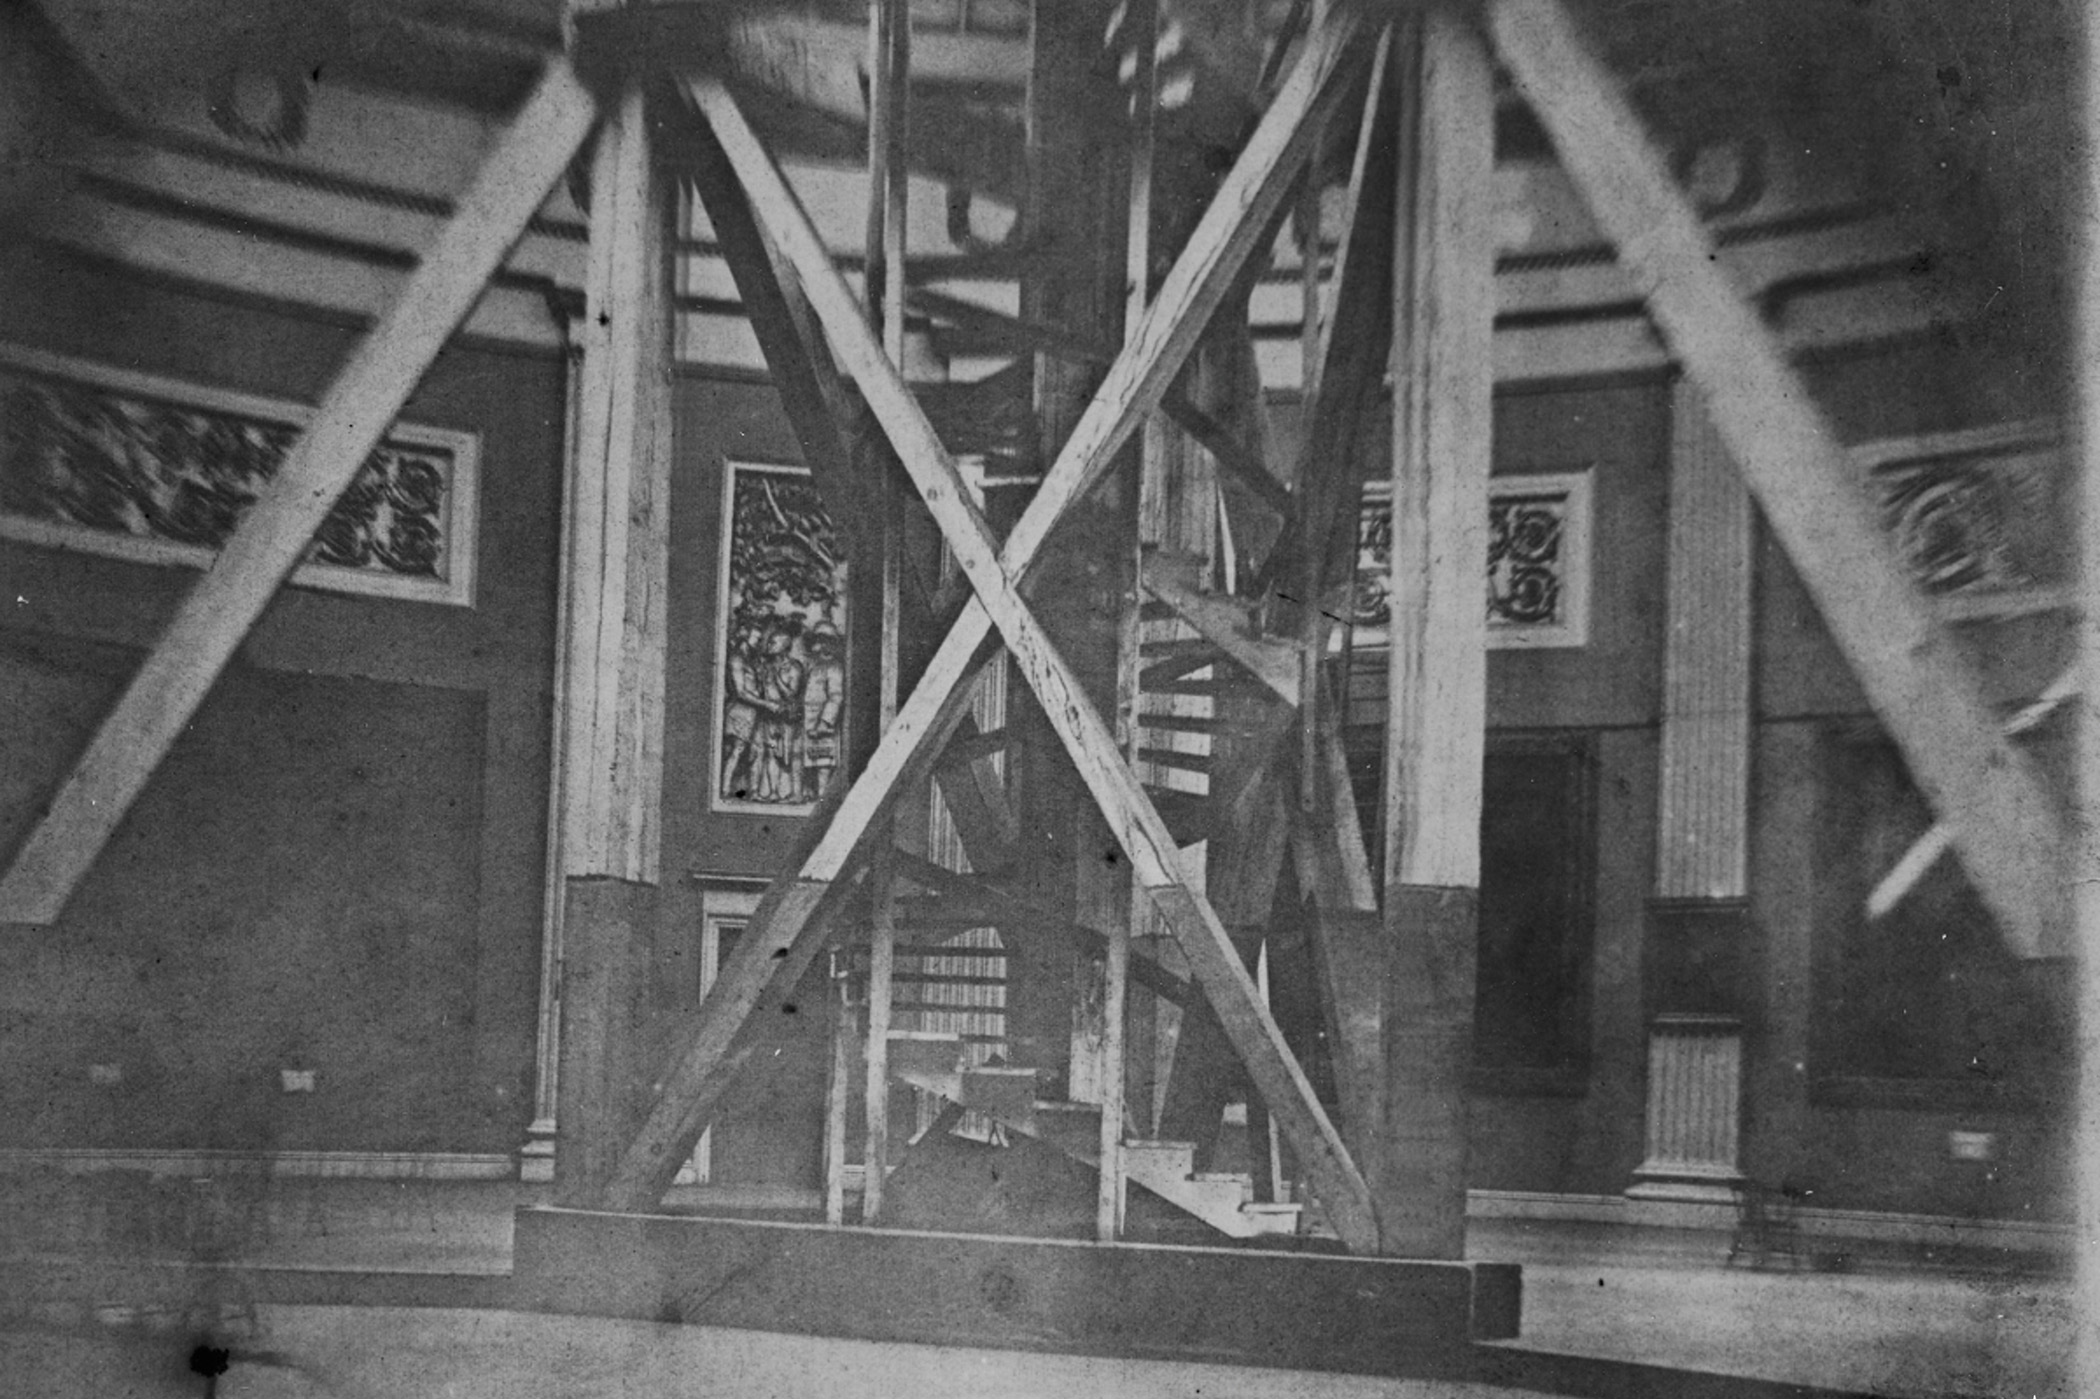 A photo commissioned by engineer of the Capitol, Montgomery Meigs, circa 1860 shows the Capitol Rotunda with base of the scaffold used to build the dome.